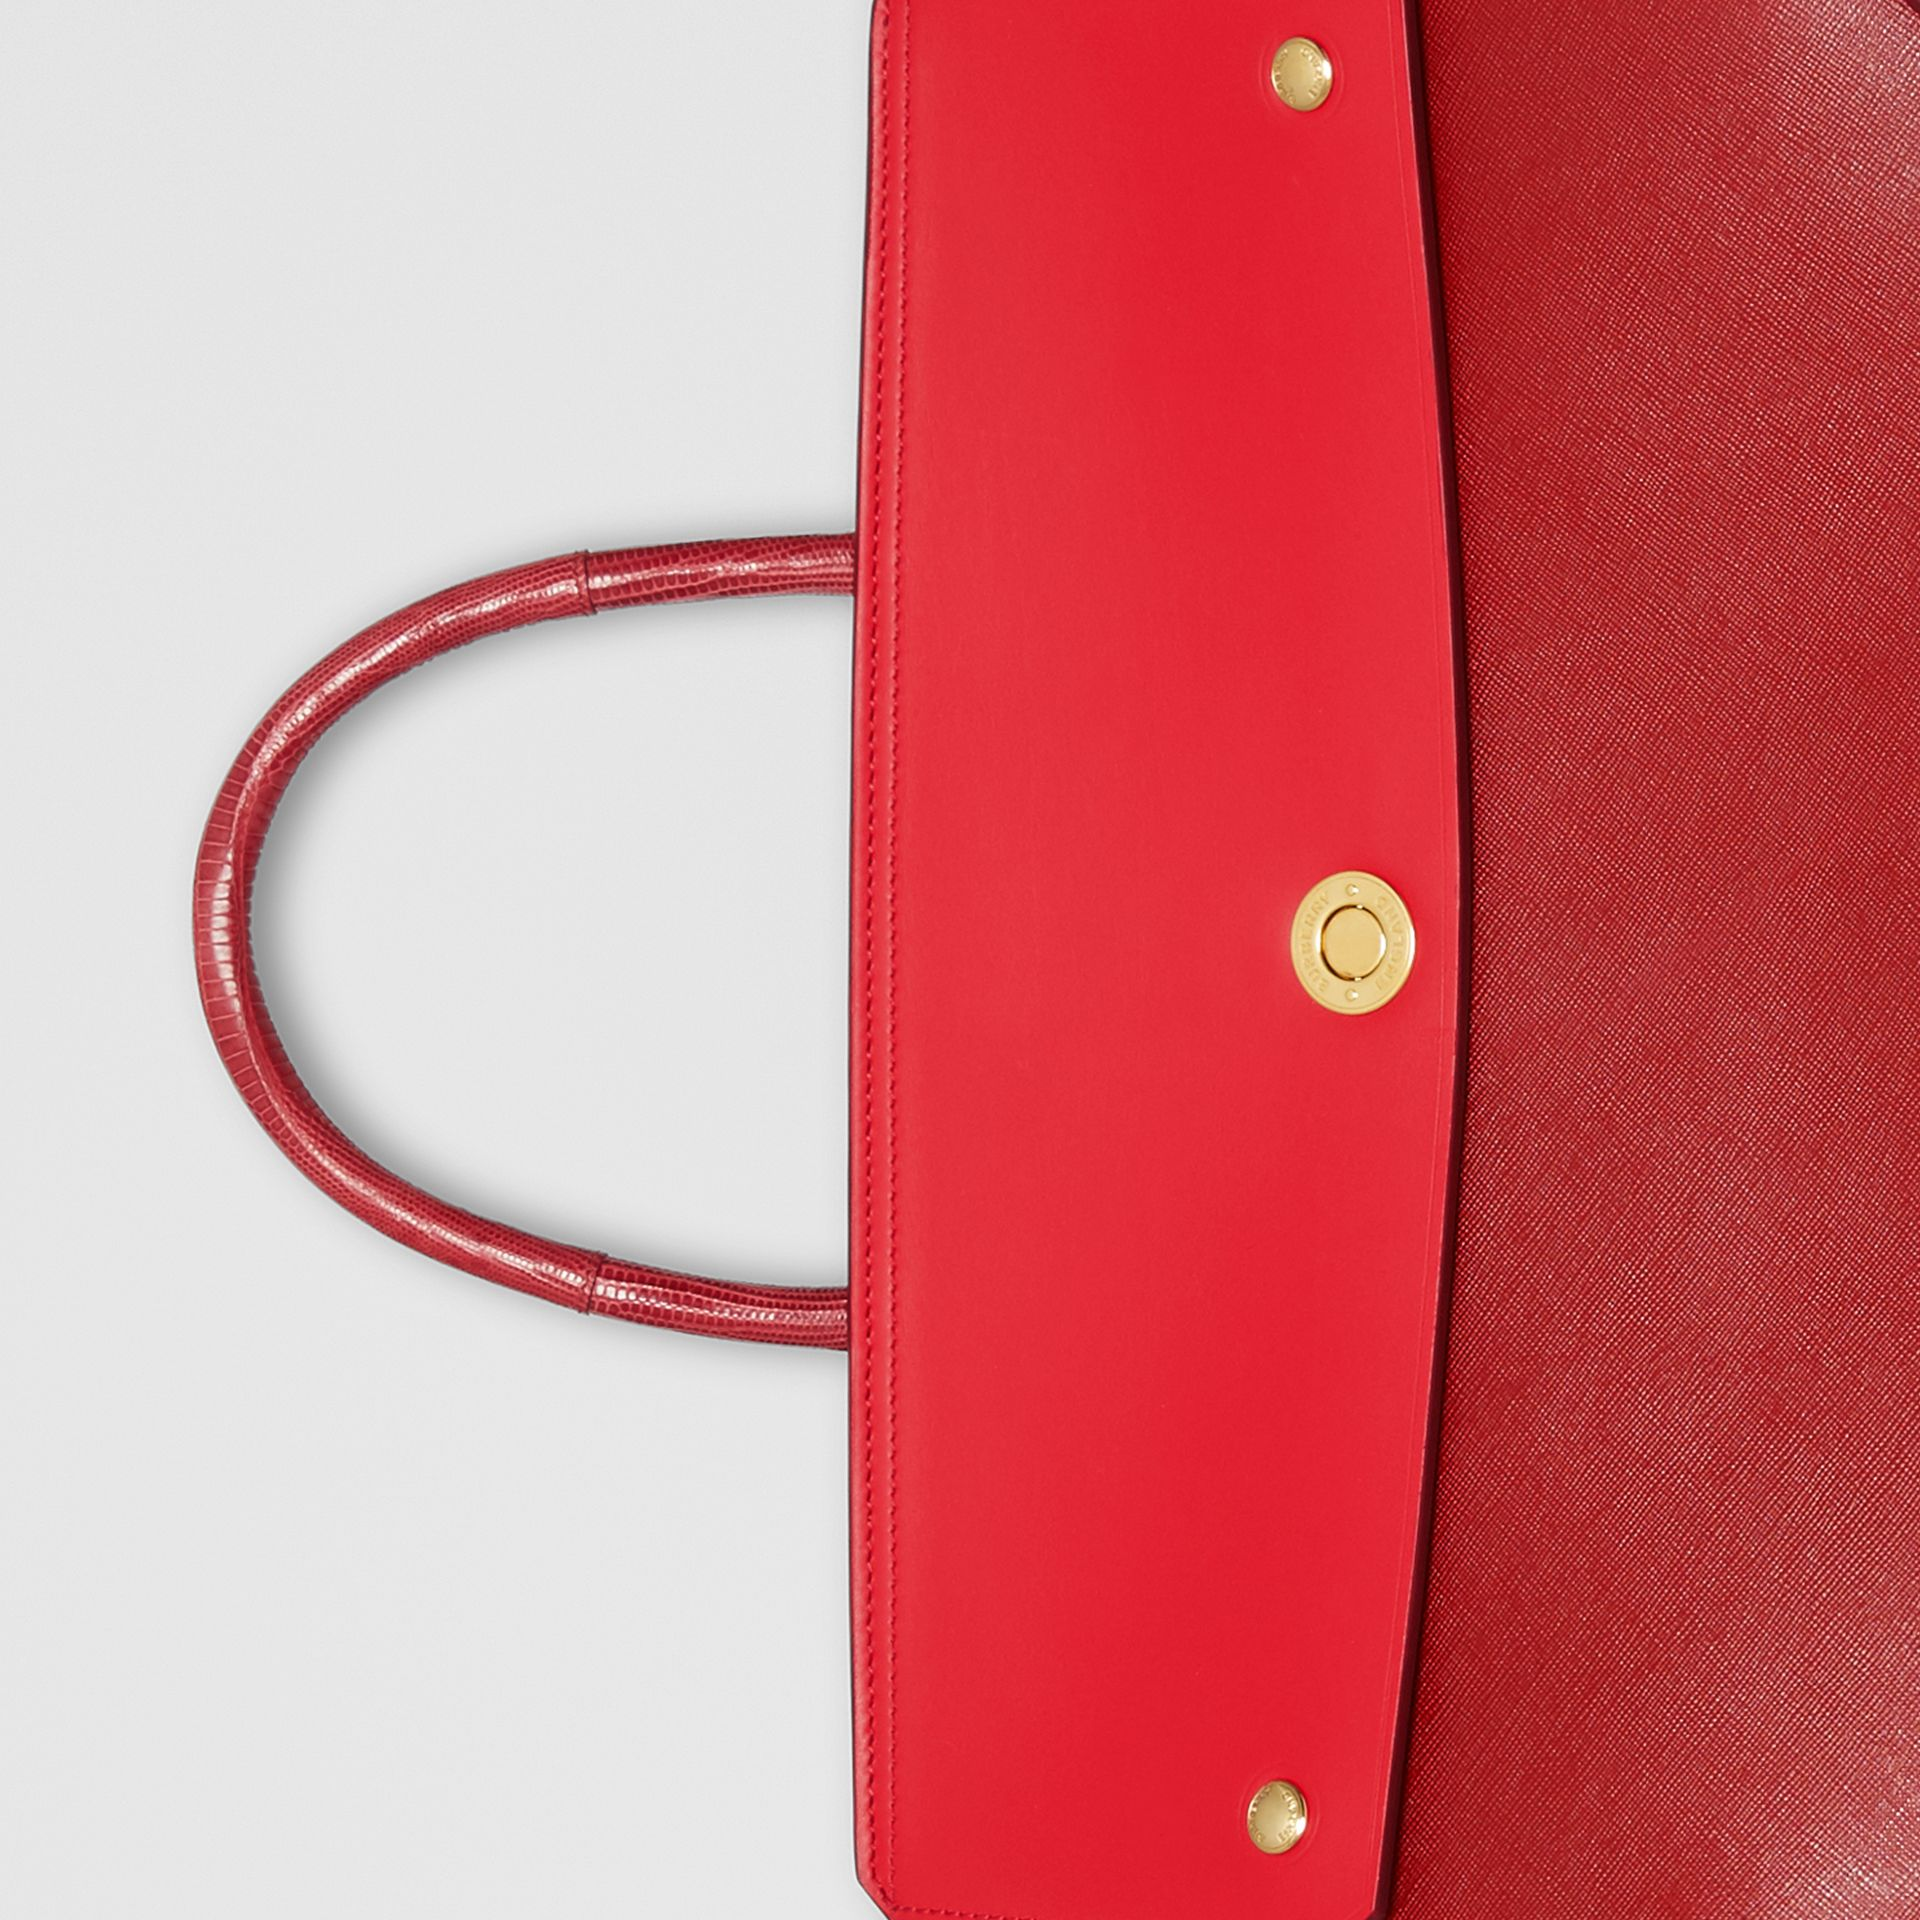 Small Leather and Suede Elizabeth Bag in Bright Military Red - Women | Burberry Singapore - gallery image 1